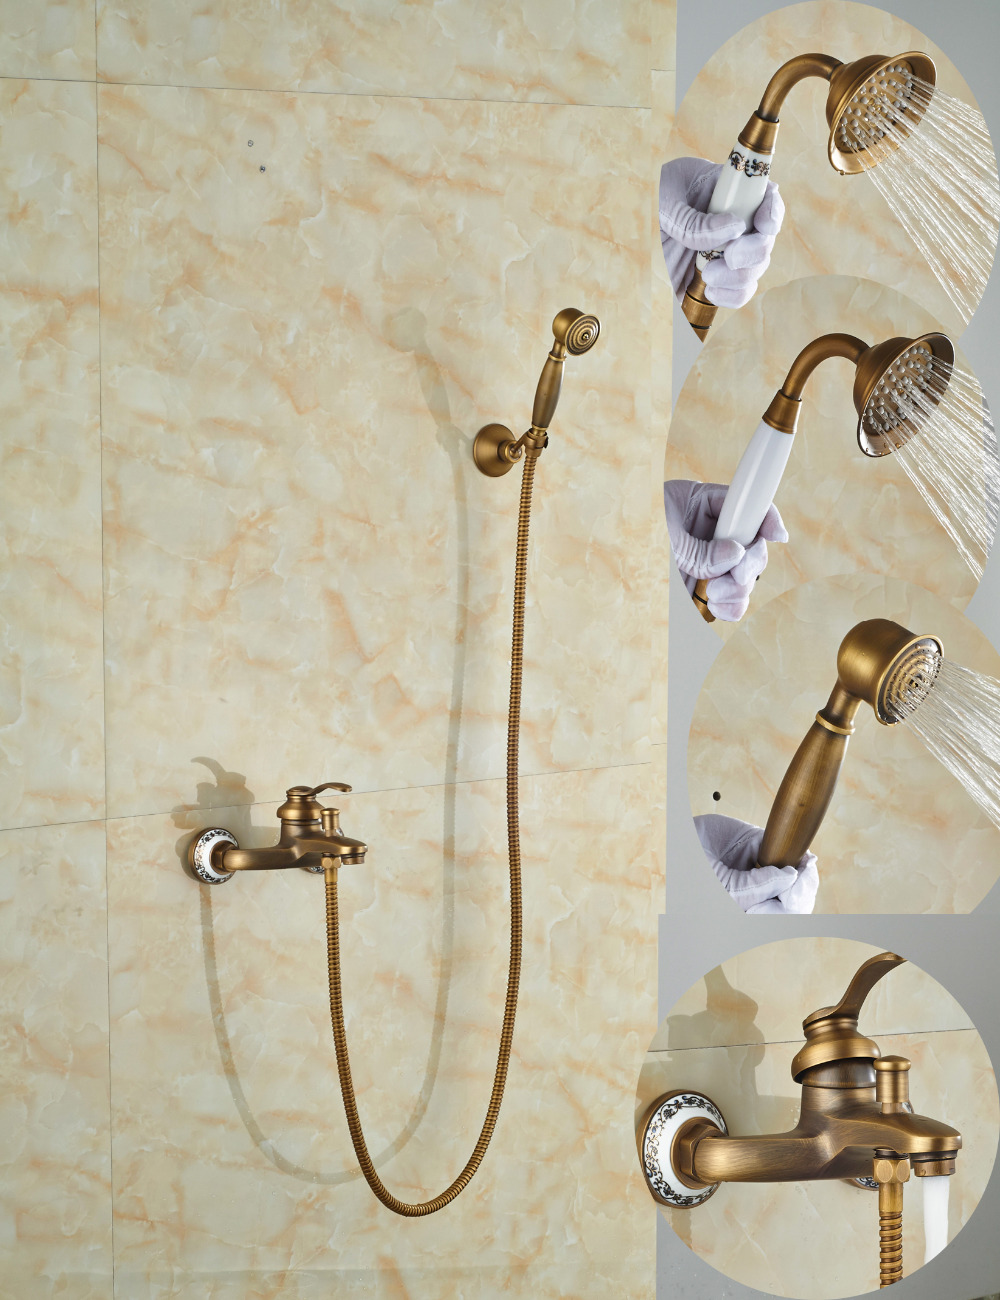 Wholesale And Retail Promotion Luxury Antique Brass Bathroom Tub Faucet Wall Mounted W/ Hand Shower Sprayer Single Handle